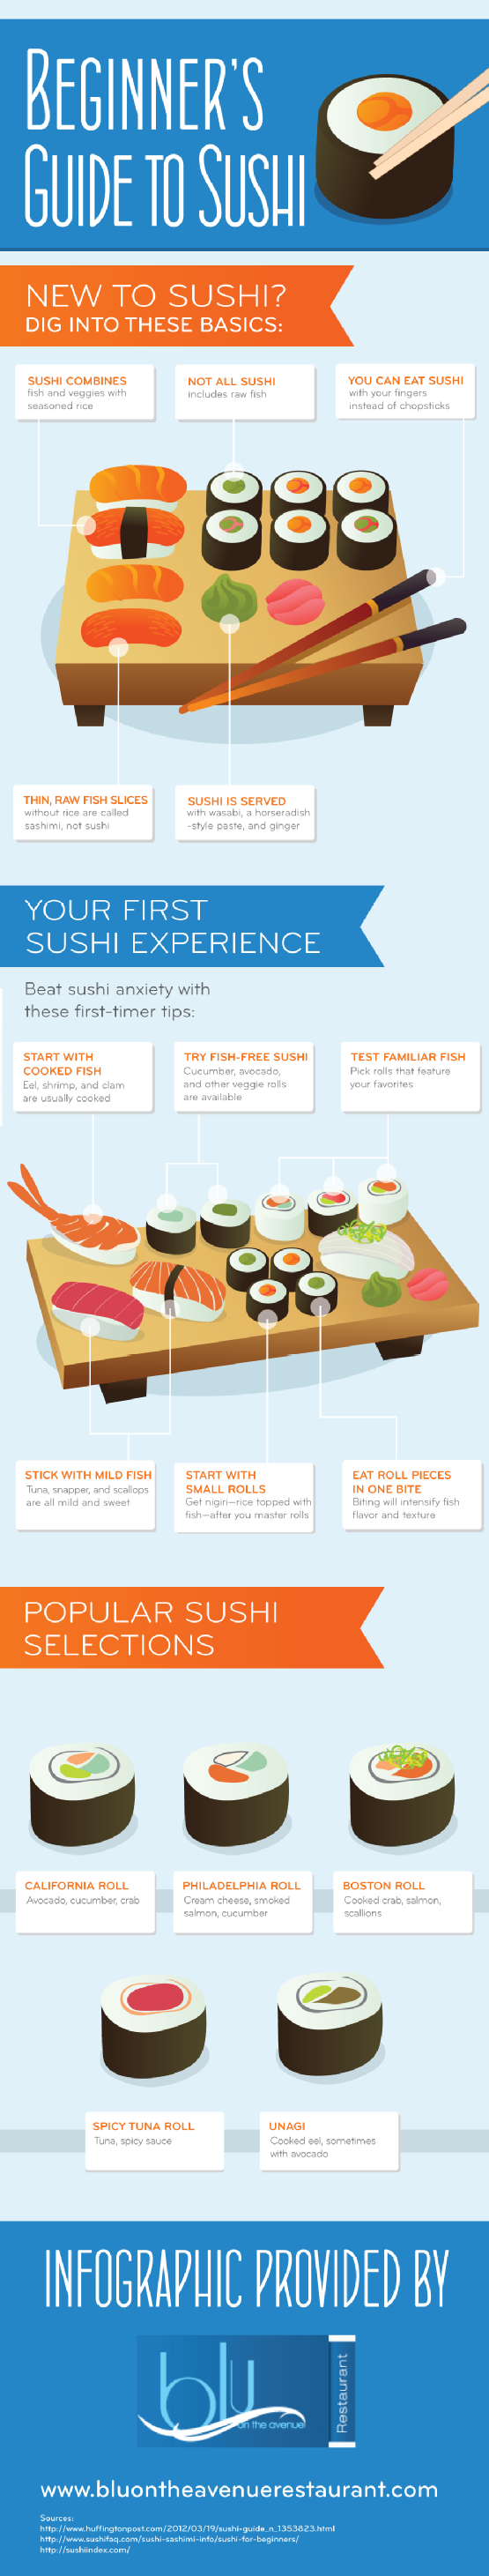 beginner's guide to sushi #infographic